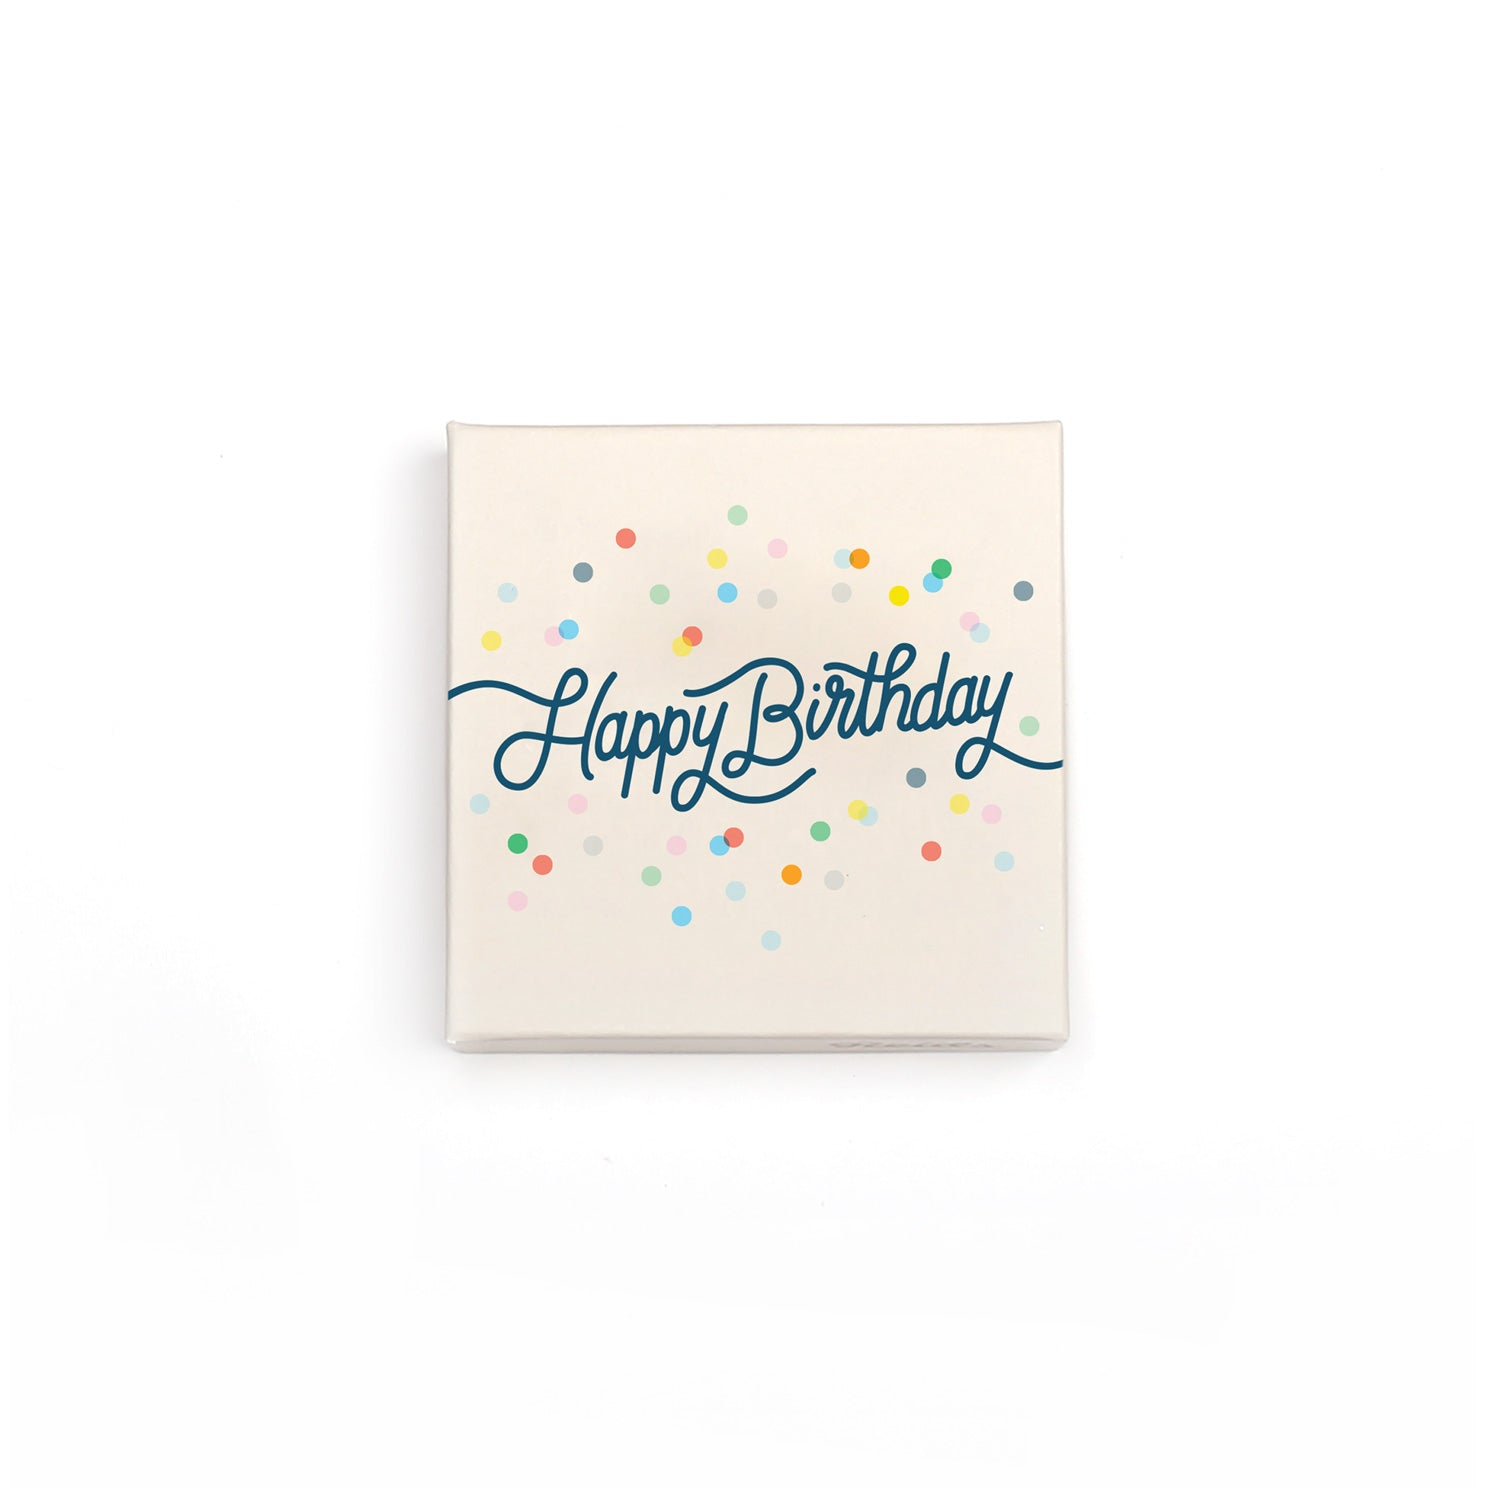 The small happy birthday box comes in a cream box with cursive happy birthday type and decorated with confetti.